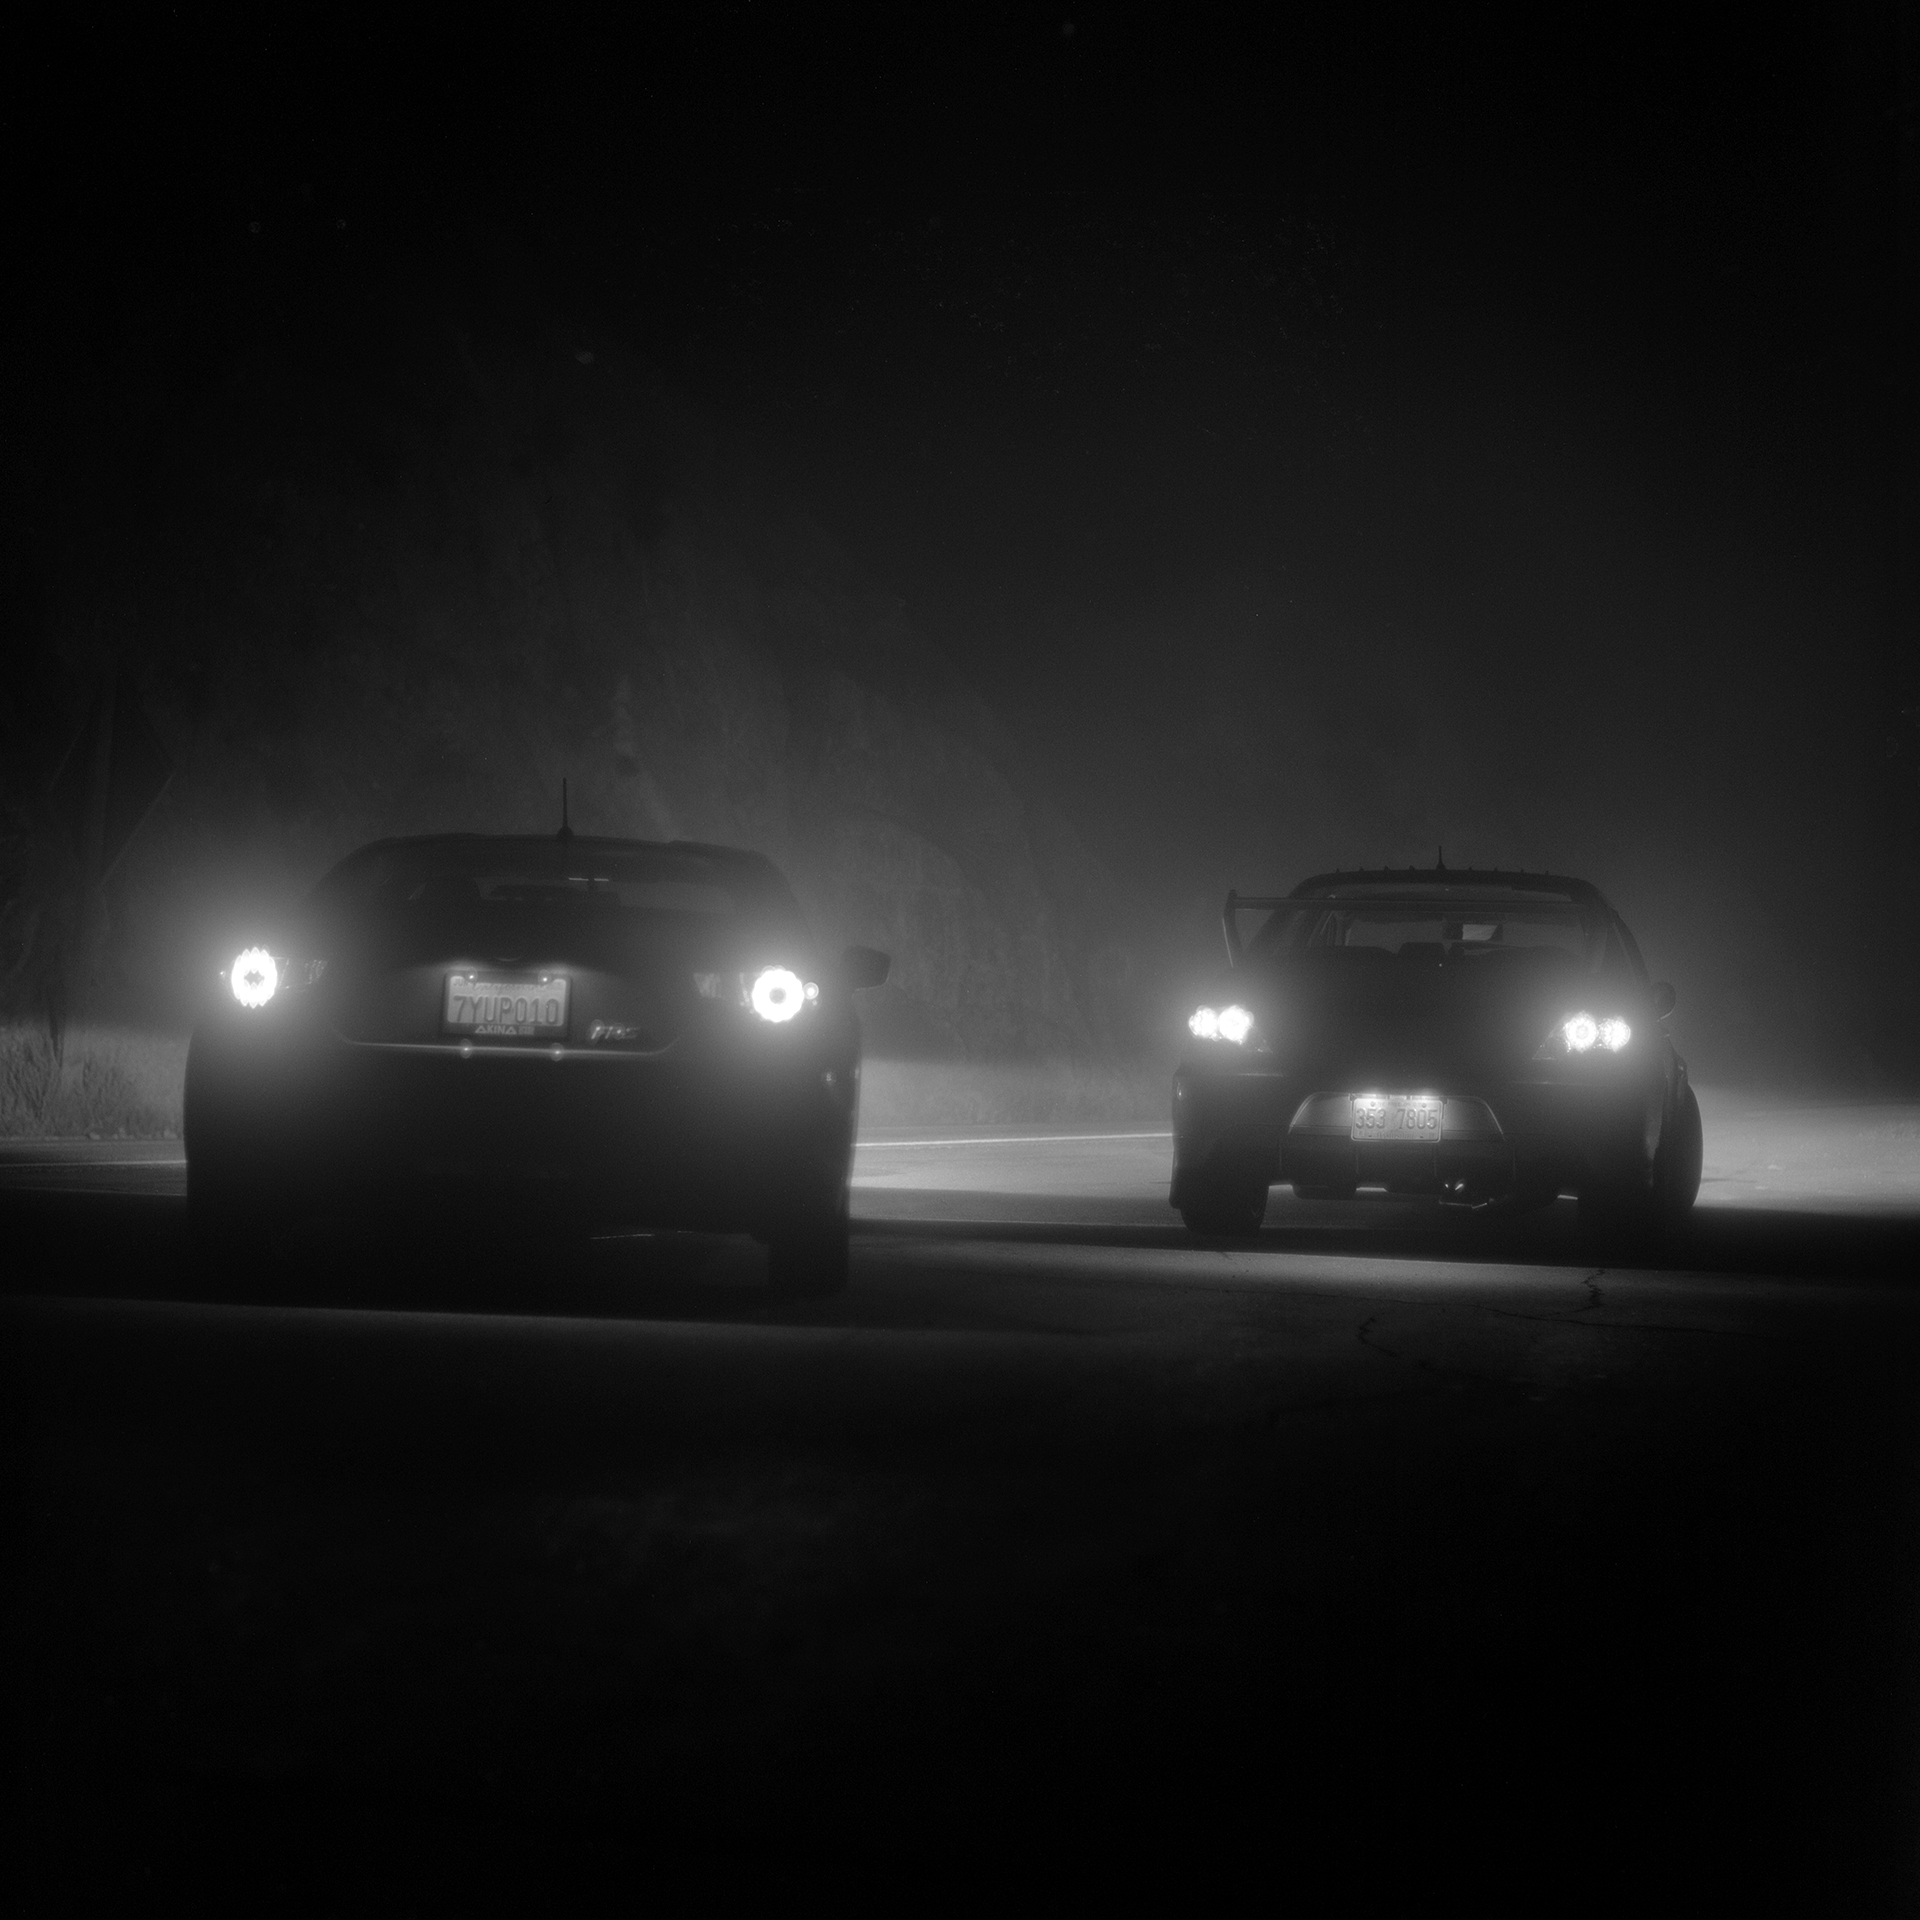 Secret Nightcore meet stopped in a foggy spot on Angeles Crest Highway